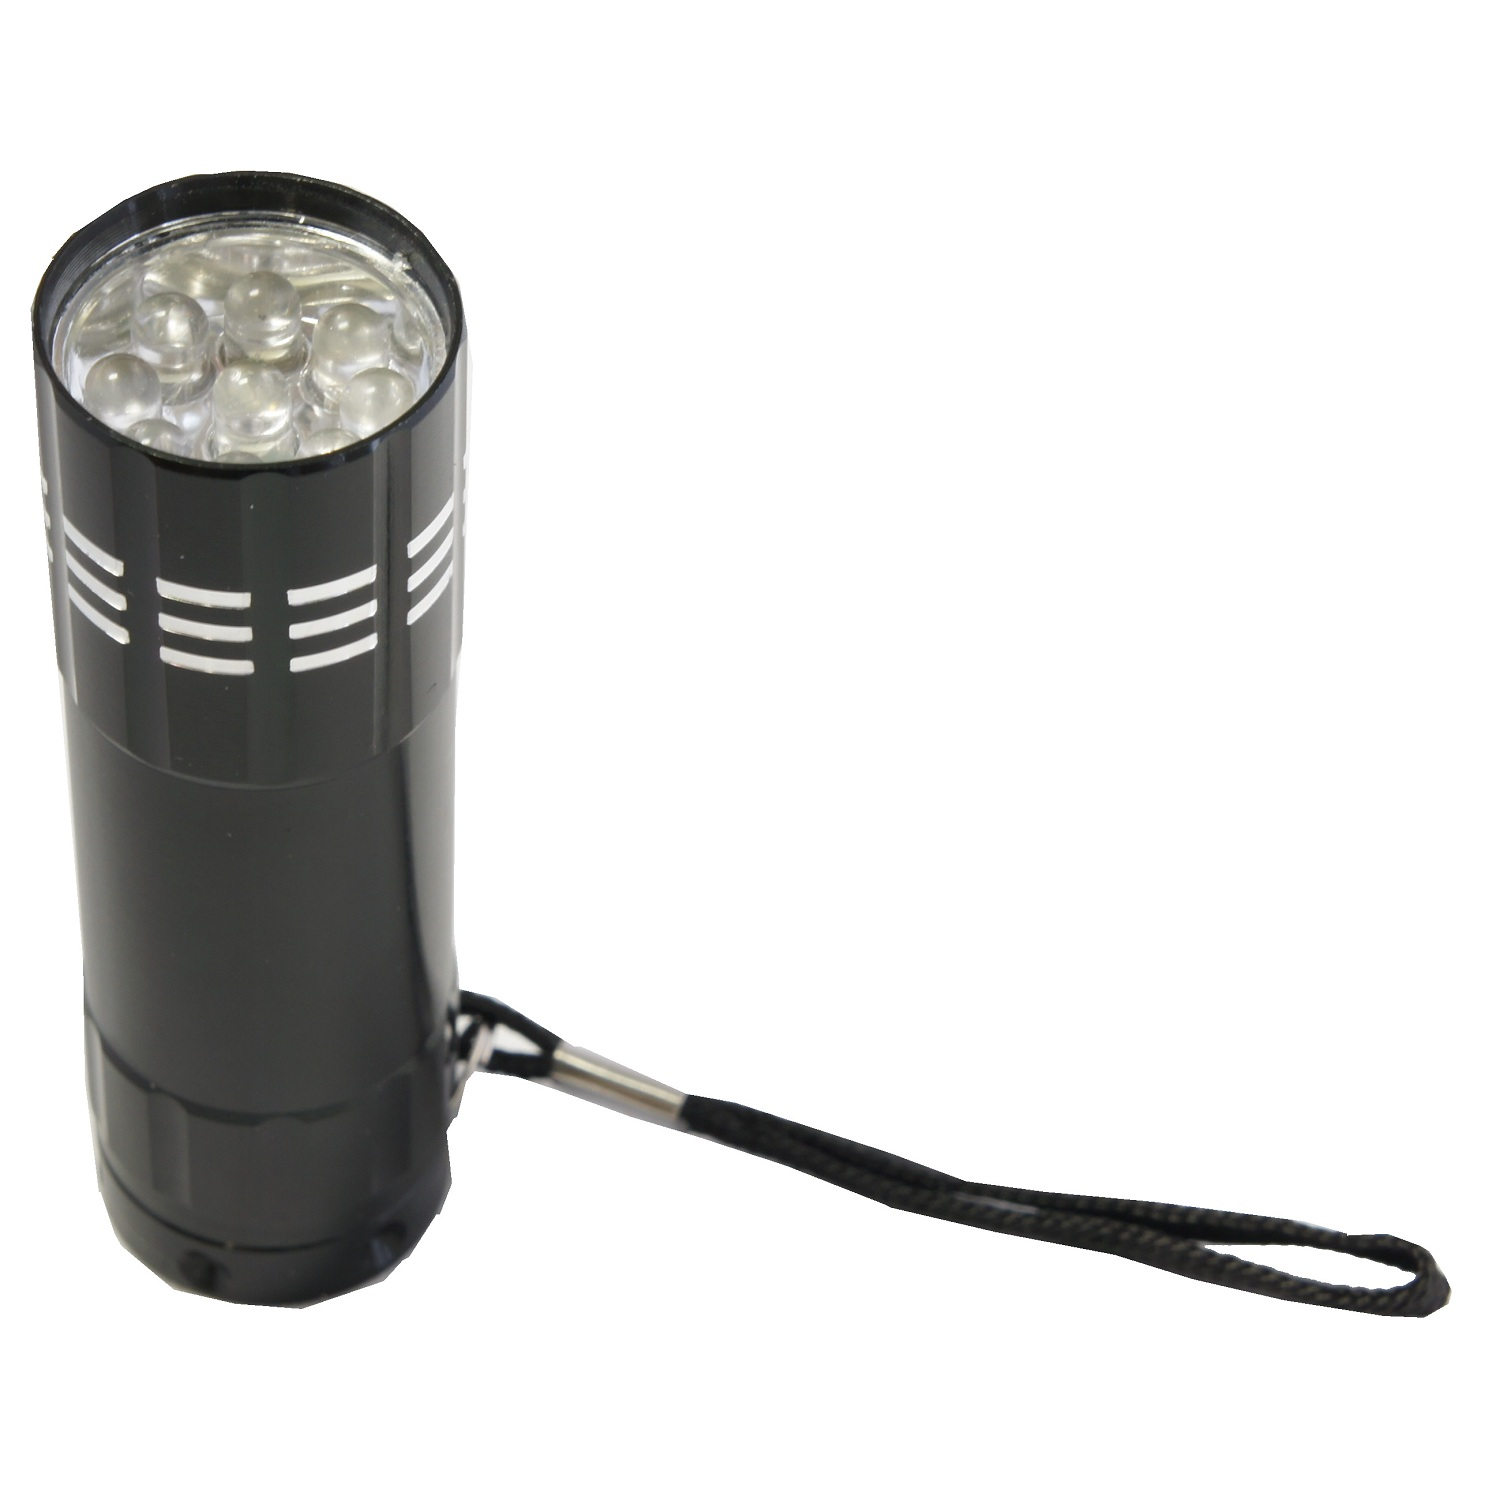 2-PACK-Dorcy-Outdoor-9-LED-Aluminum-Flashlight-Combo-With-Batteries